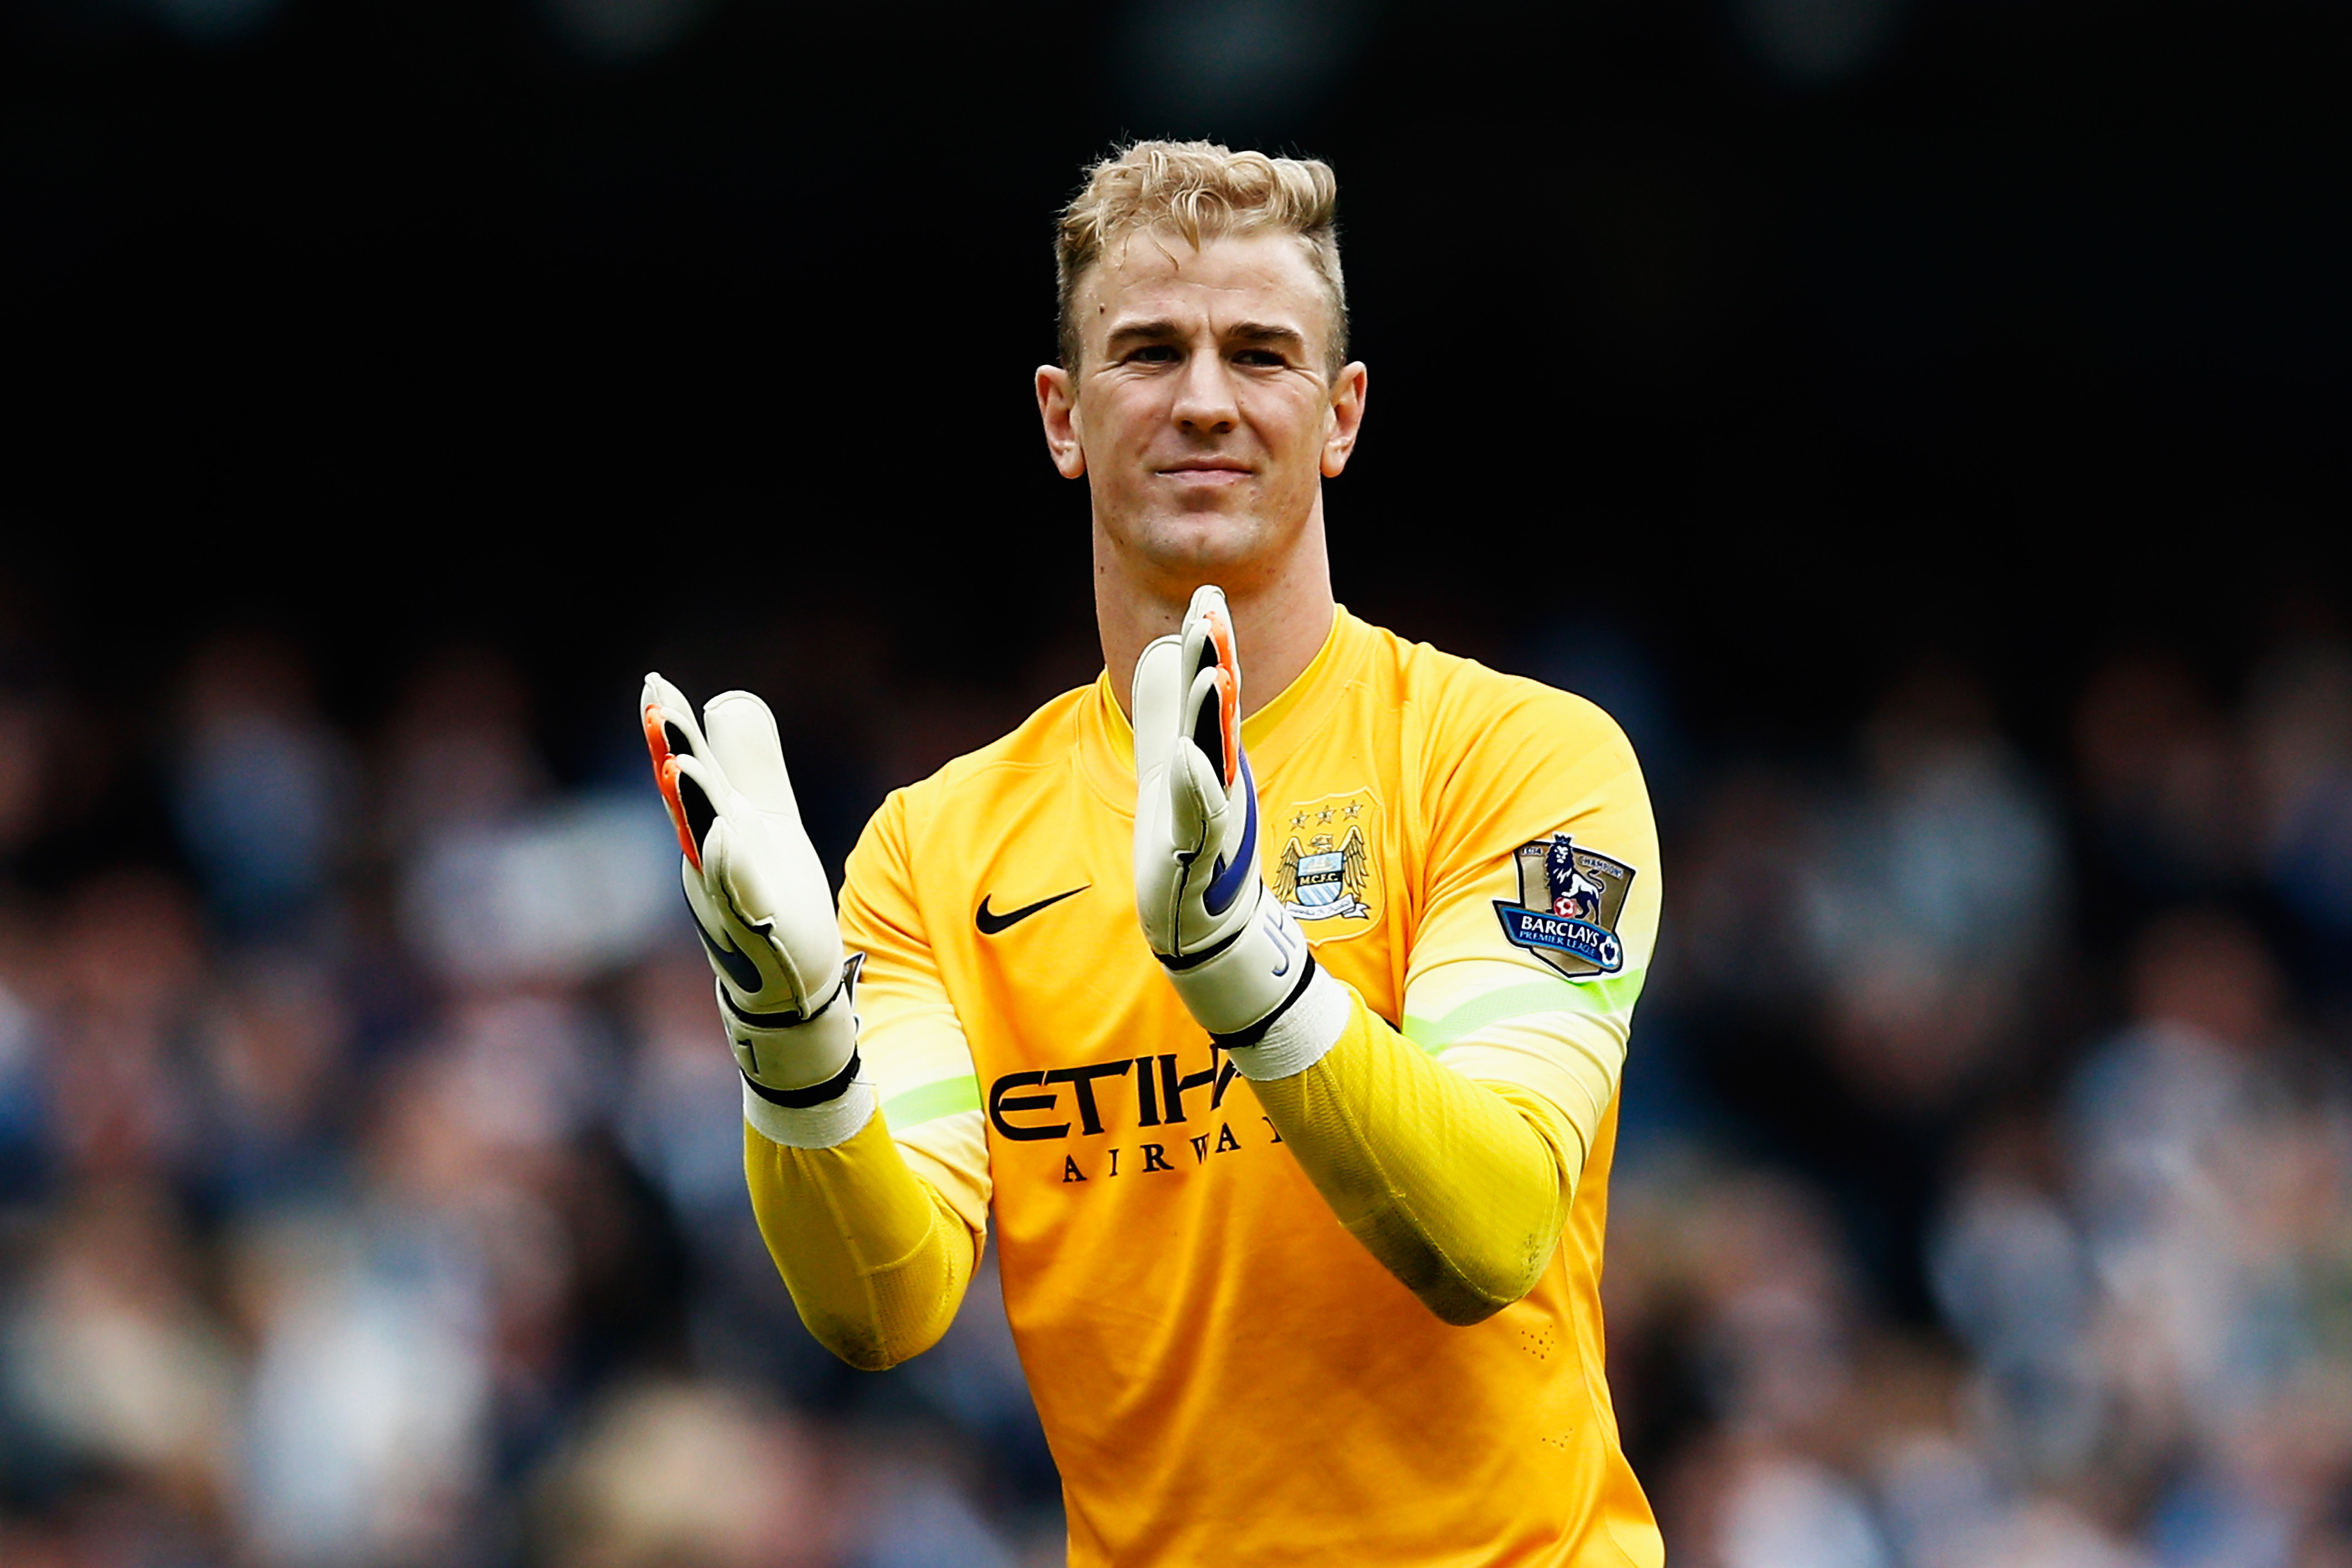 Joe Heart has been at the heart of Manchester City's squad this season.